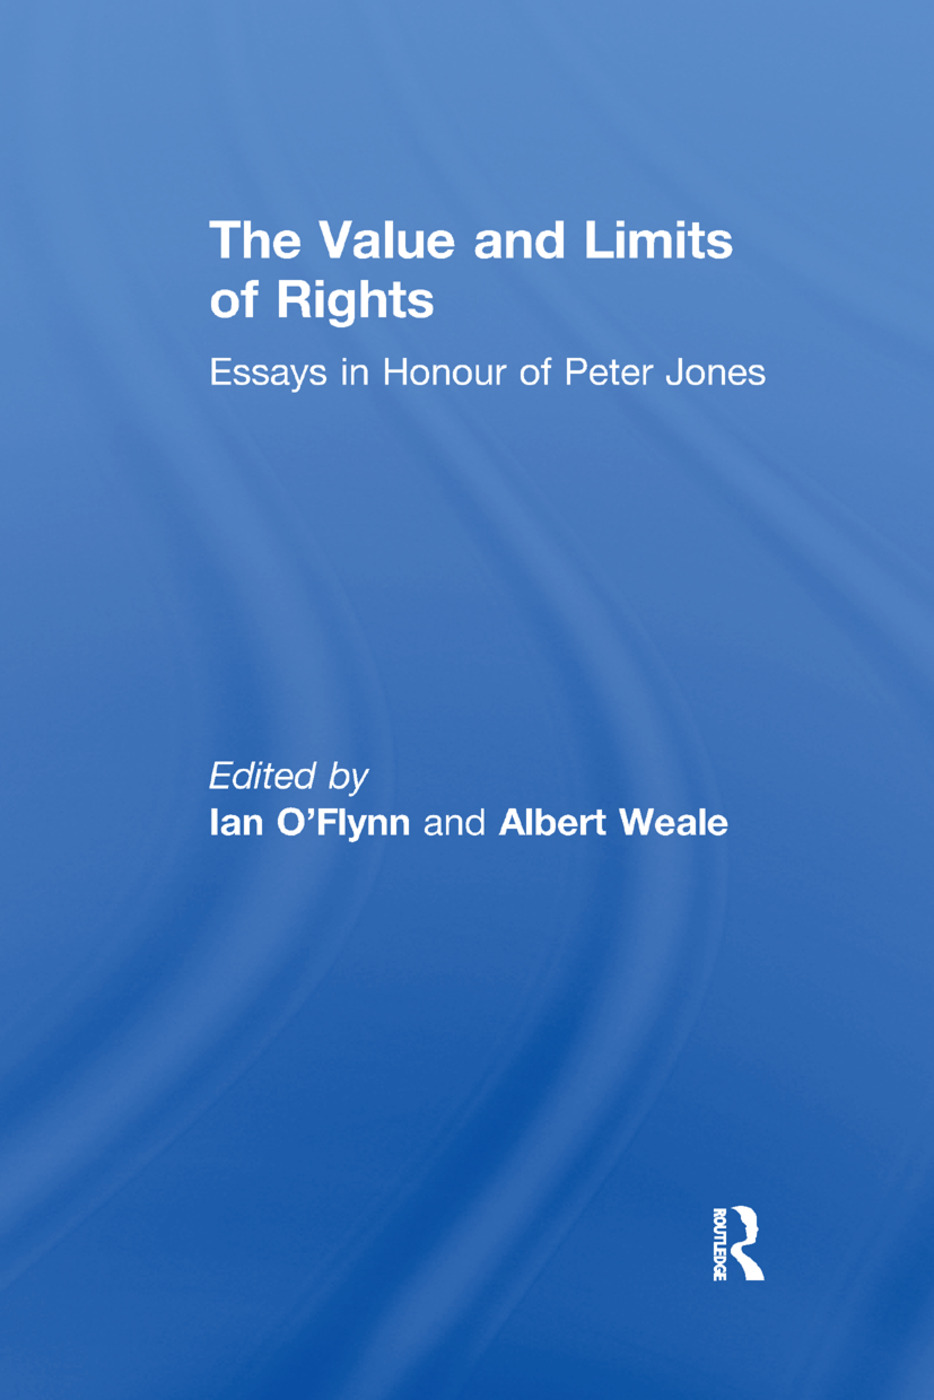 The Value and Limits of Rights: Essays in Honour of Peter Jones book cover